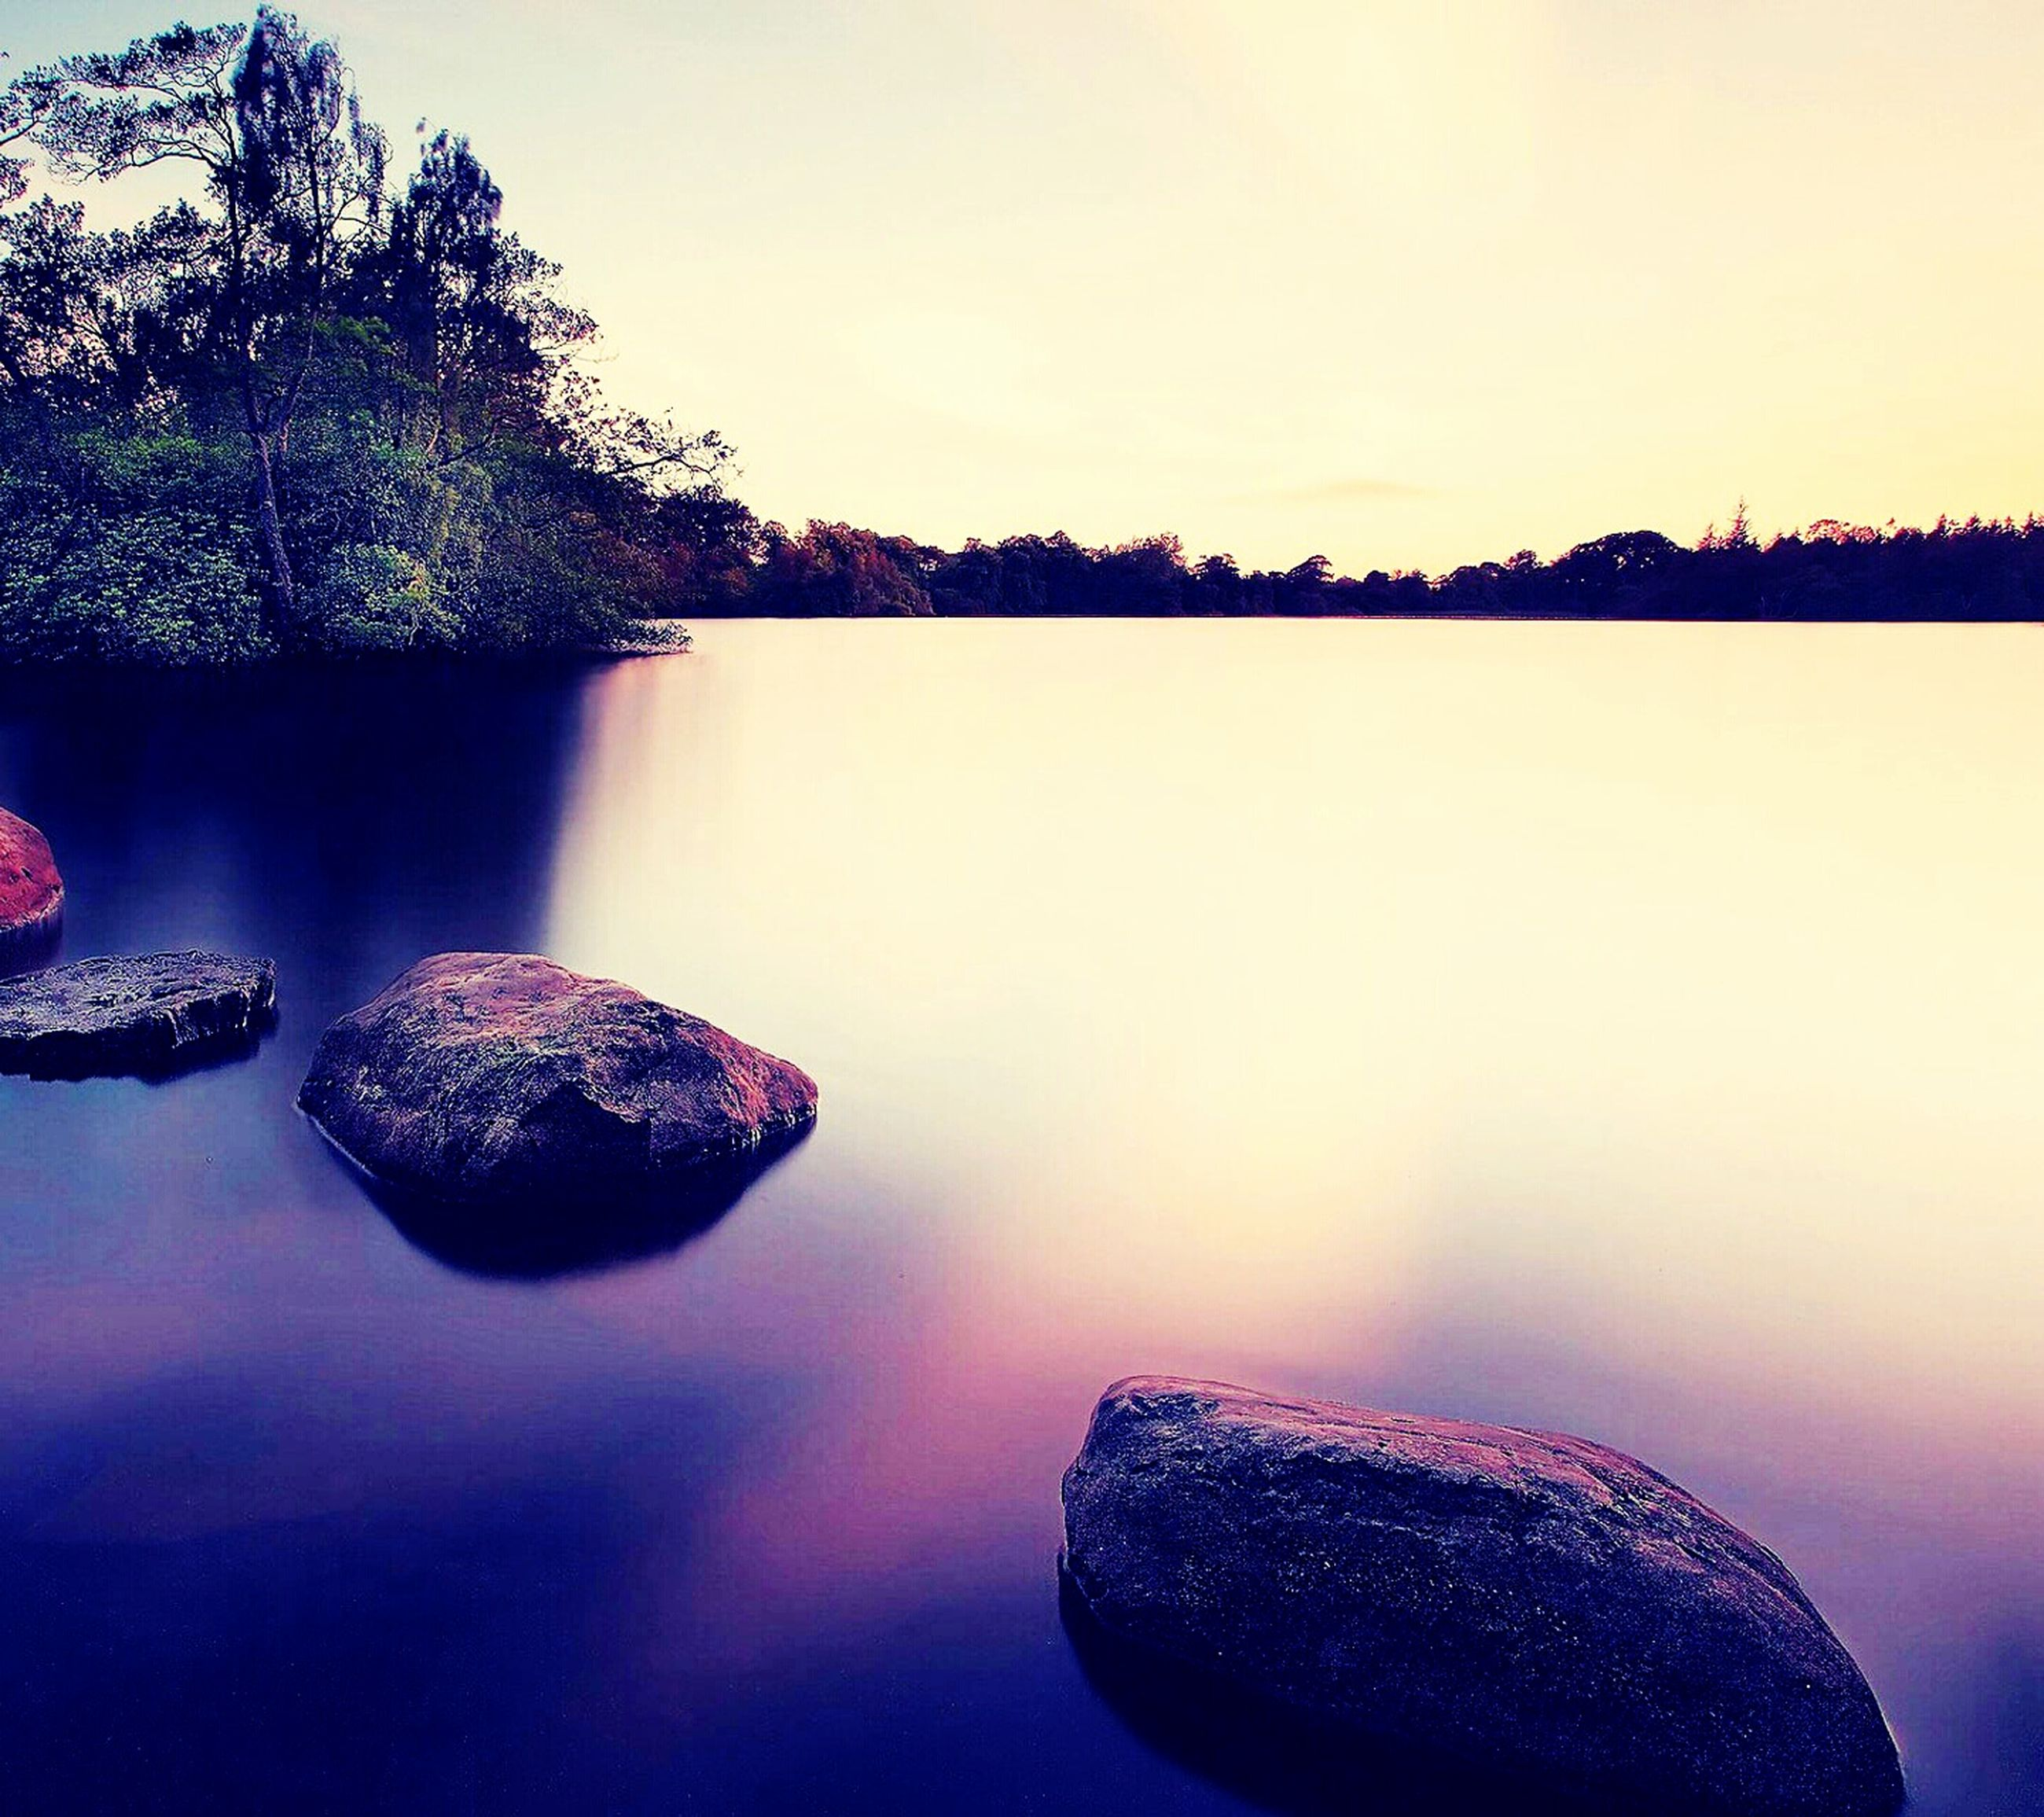 water, reflection, tranquility, tranquil scene, beauty in nature, scenics, nature, clear sky, rock - object, lake, waterfront, stone - object, tree, idyllic, sky, copy space, no people, sunset, standing water, outdoors